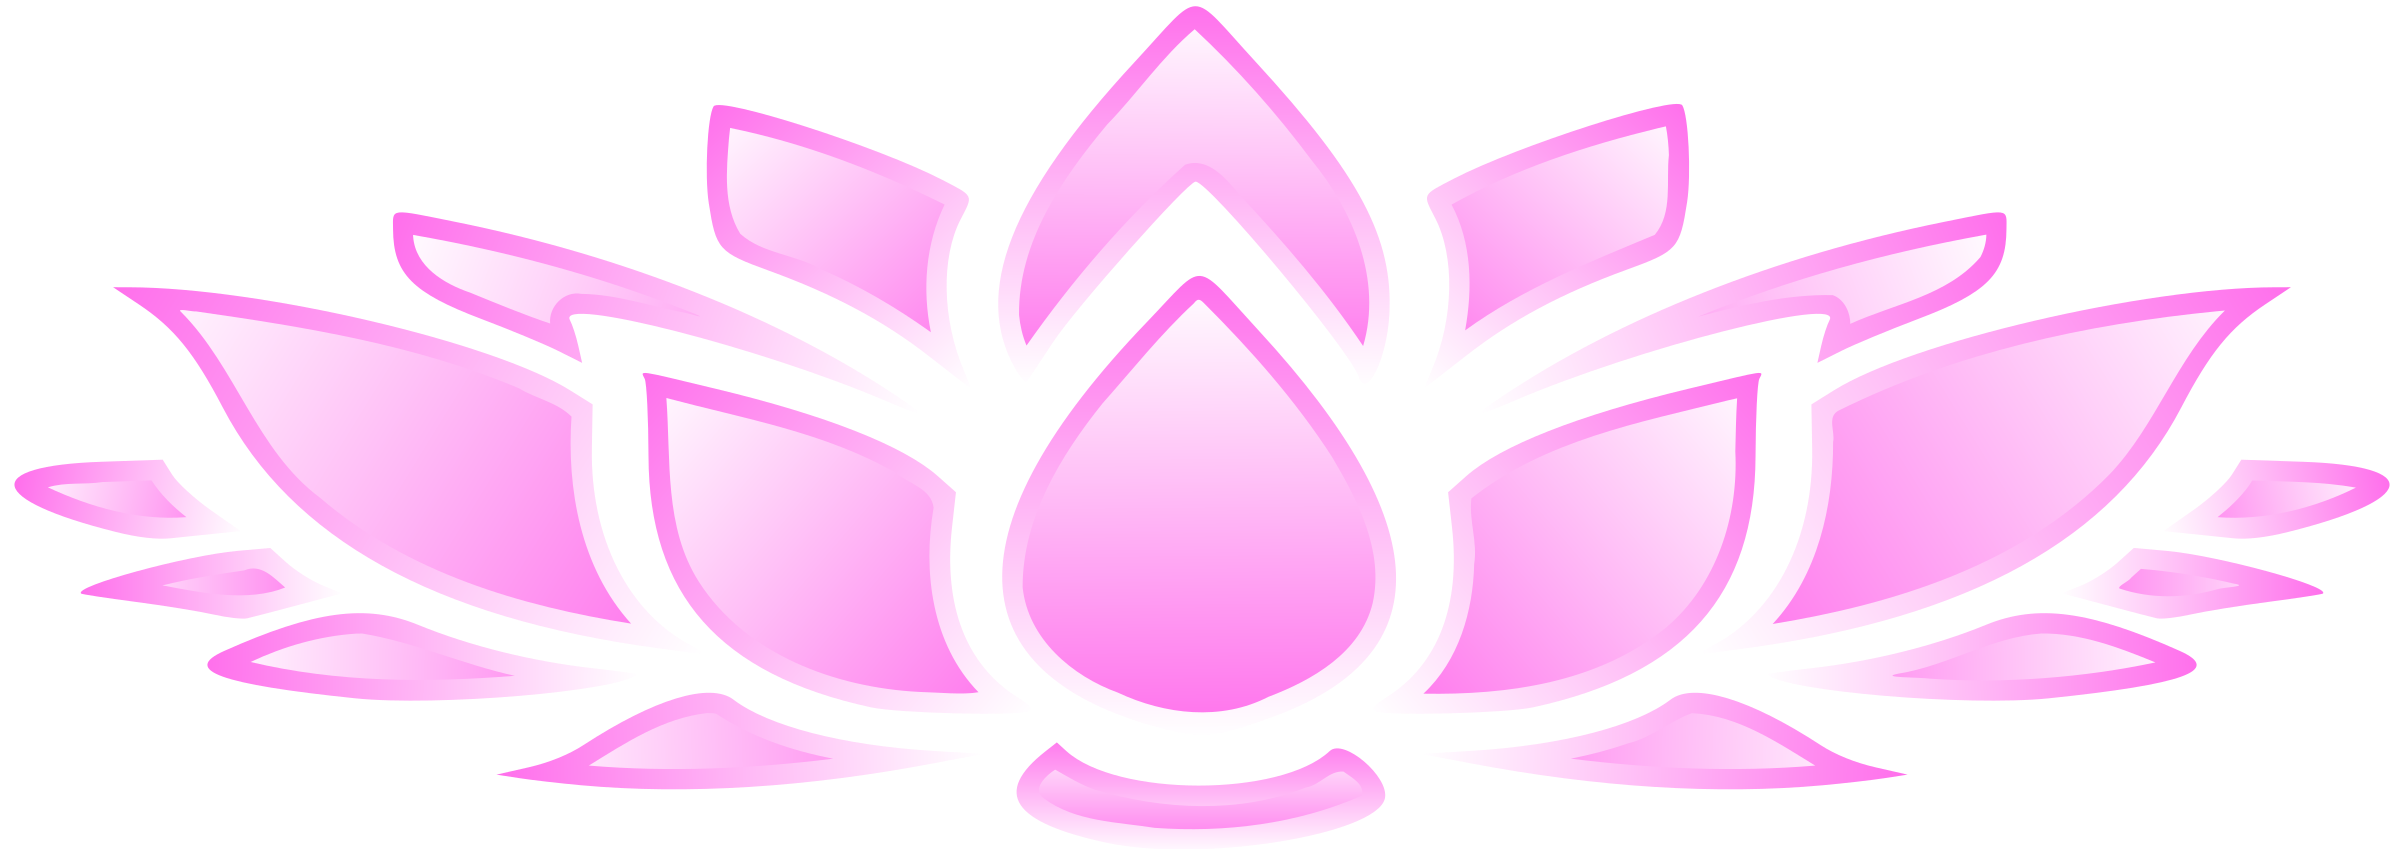 Lotus flower 3 by Firkin